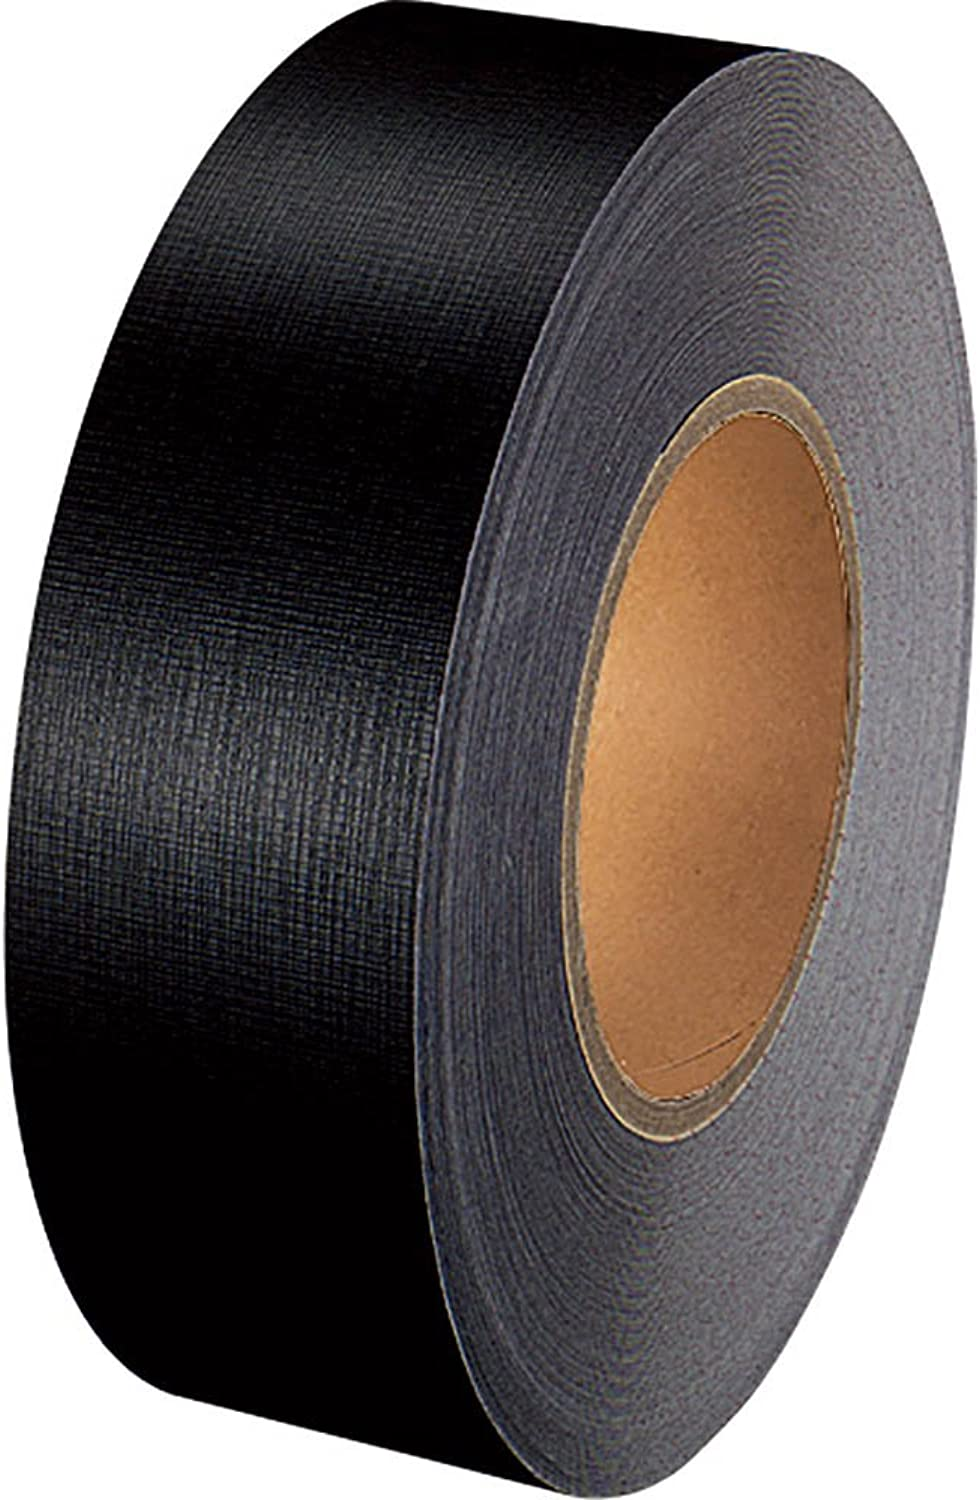 Kokuyo S & T bookbinding tape tape tape commercial paper cross 50mm x 50m schwarz (japan import) B0012OTLZI | Viele Sorten